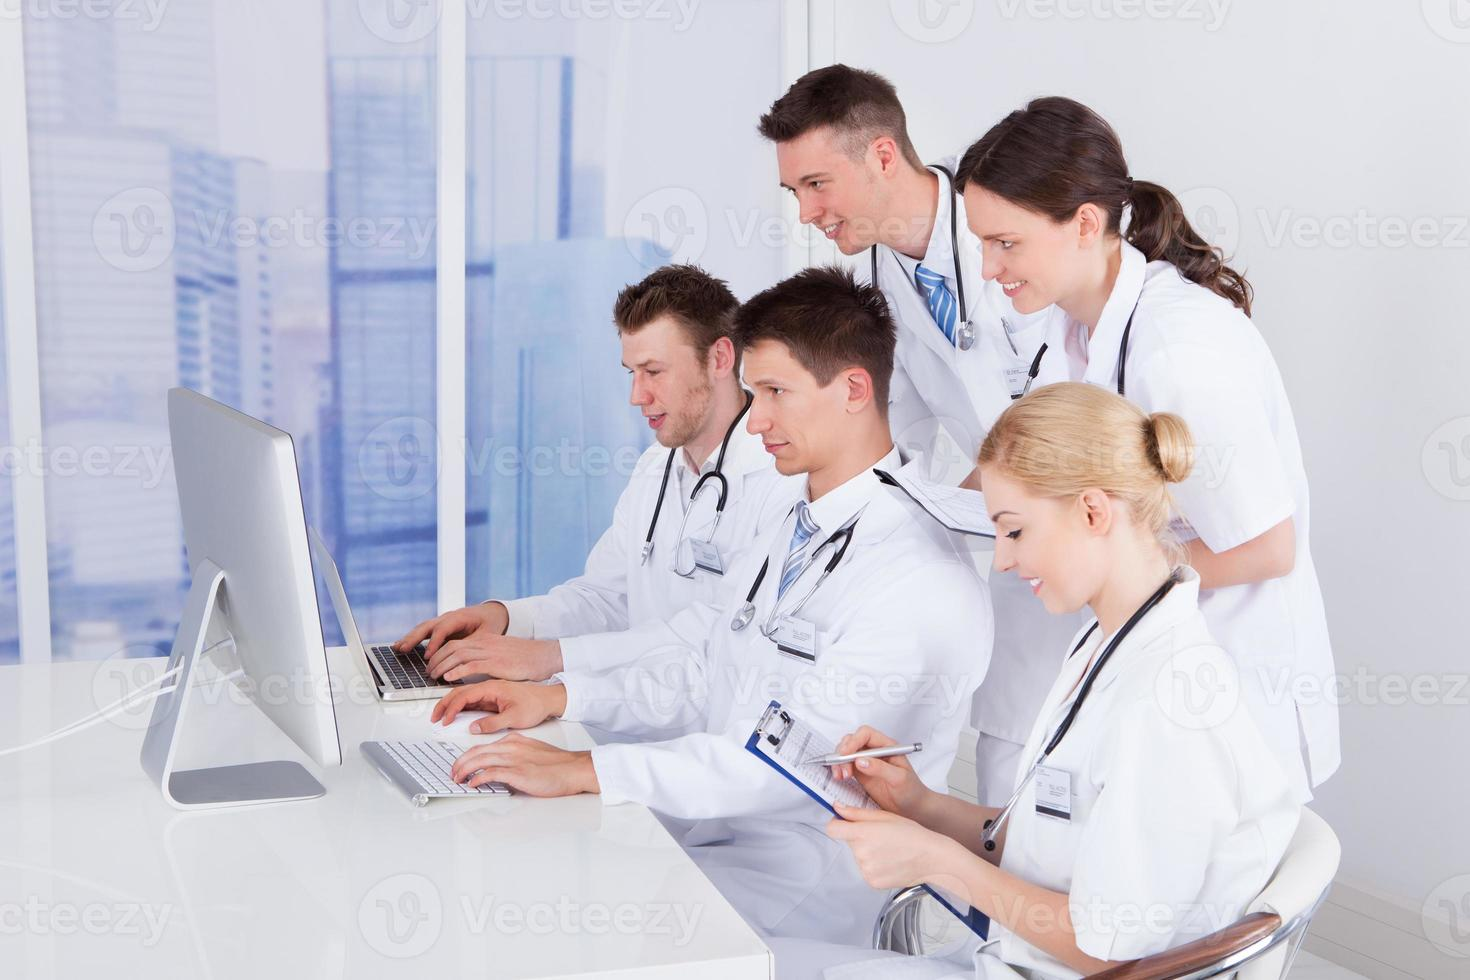 Doctors Working Together On Computer In Hospital photo